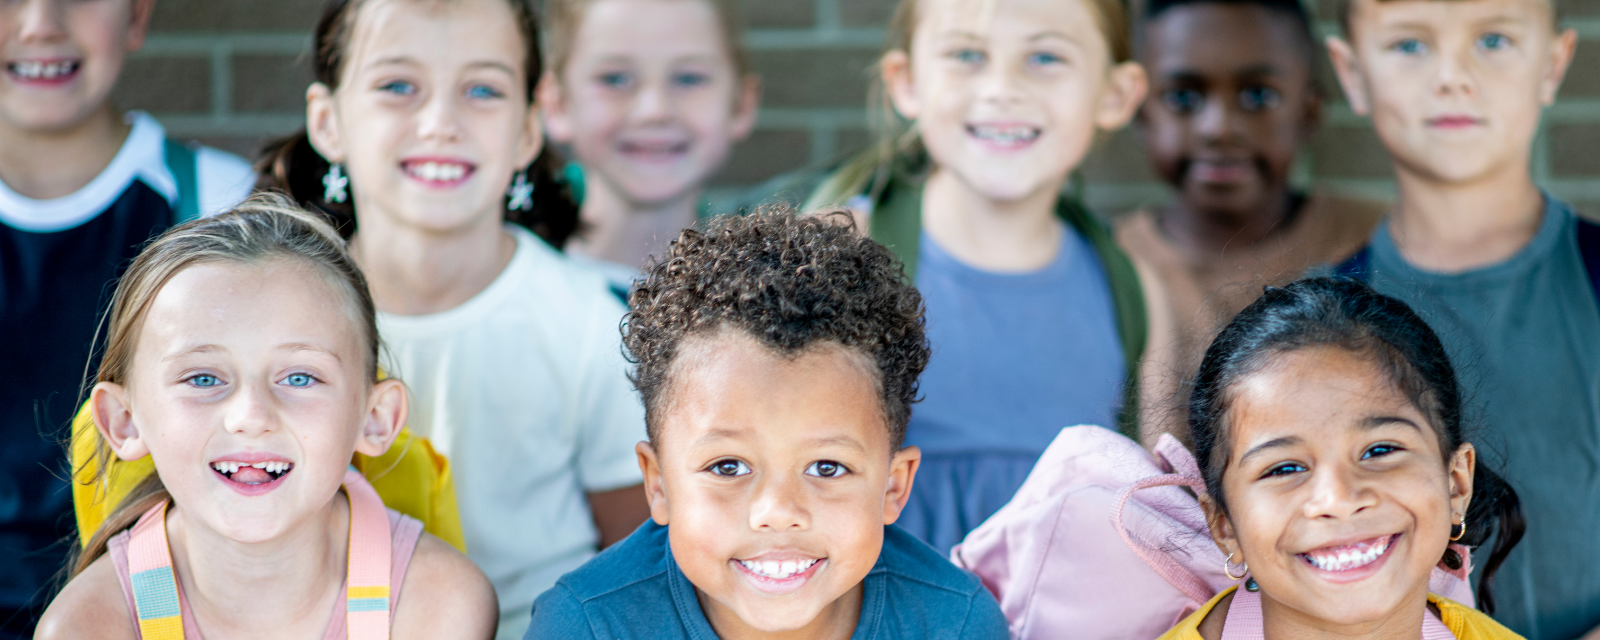 group of elementary students smiling